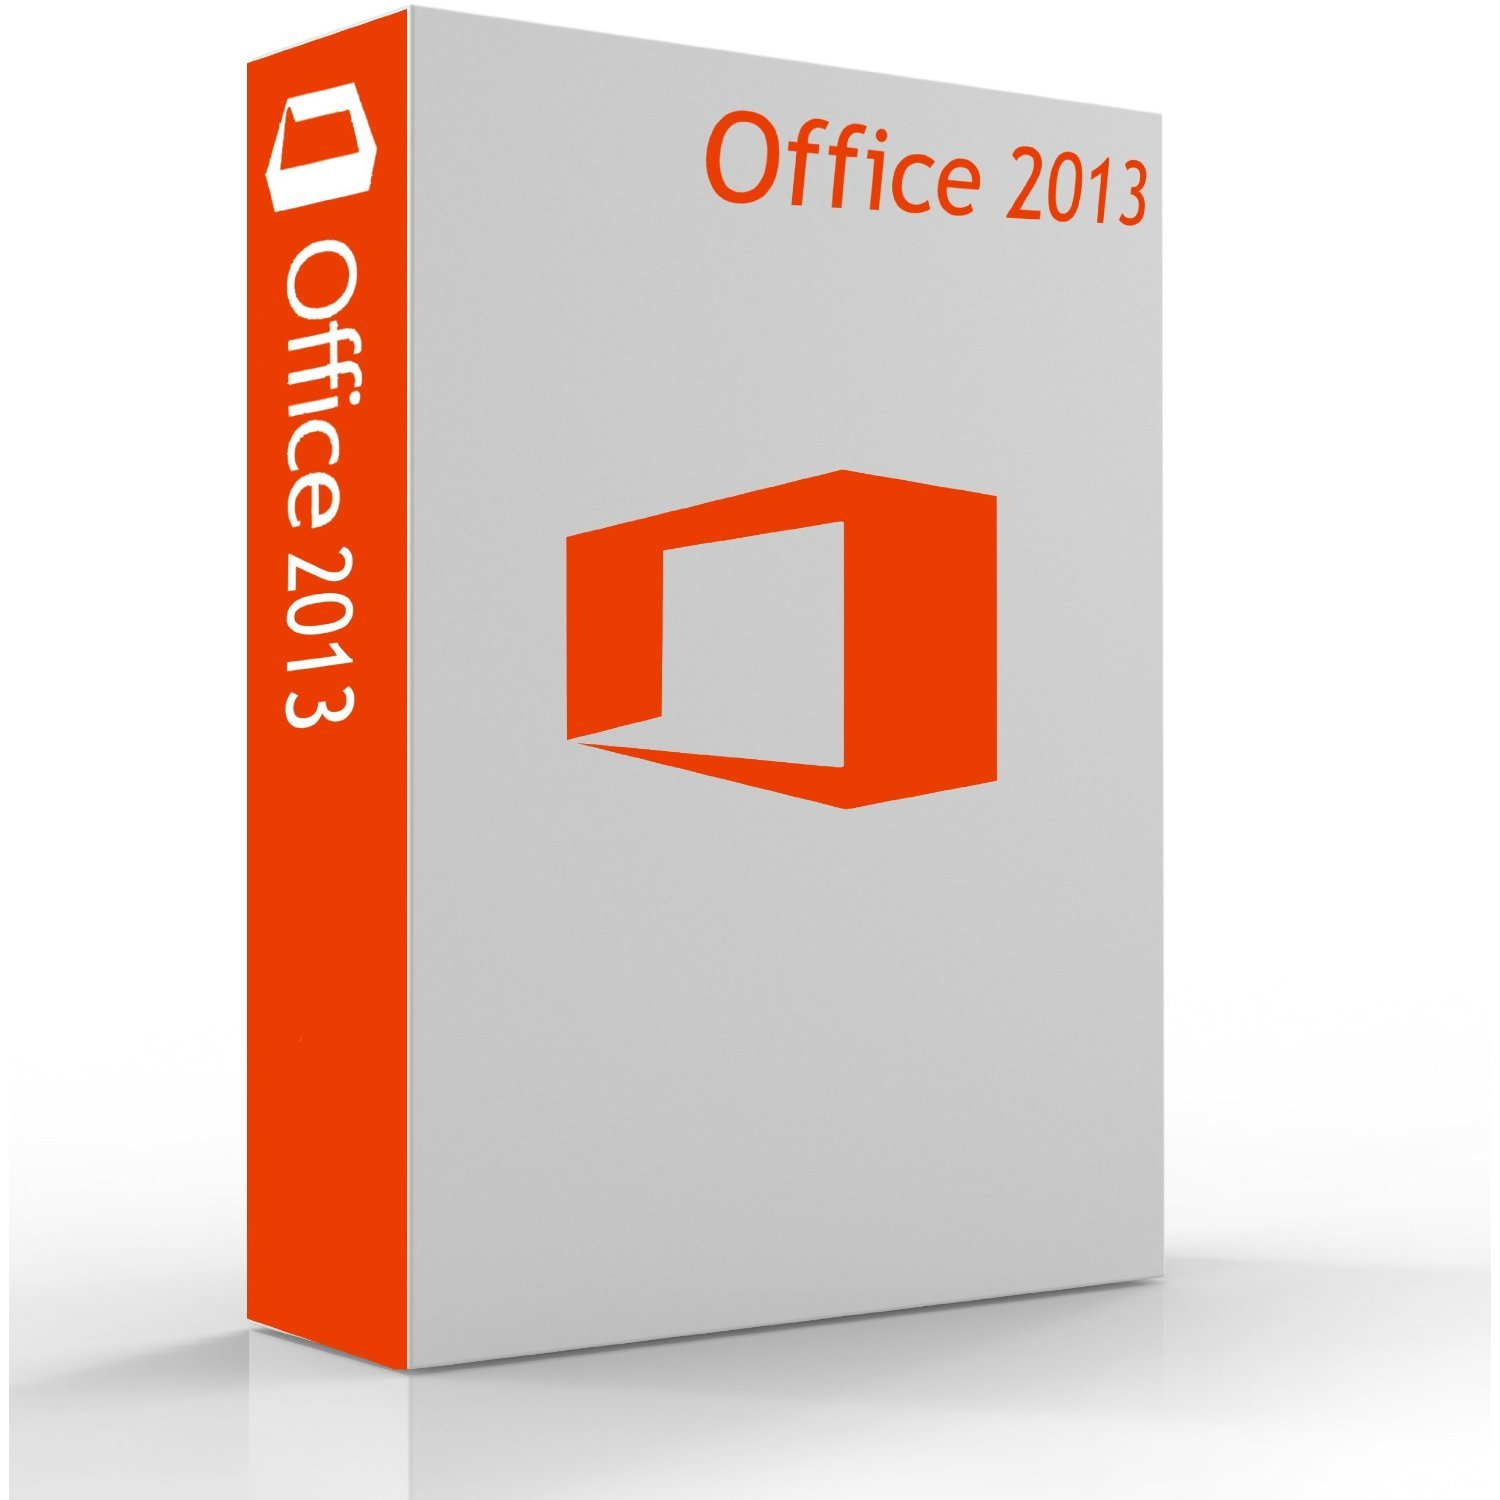 Product Key specially for Microsoft Office 2013 Professional Plus